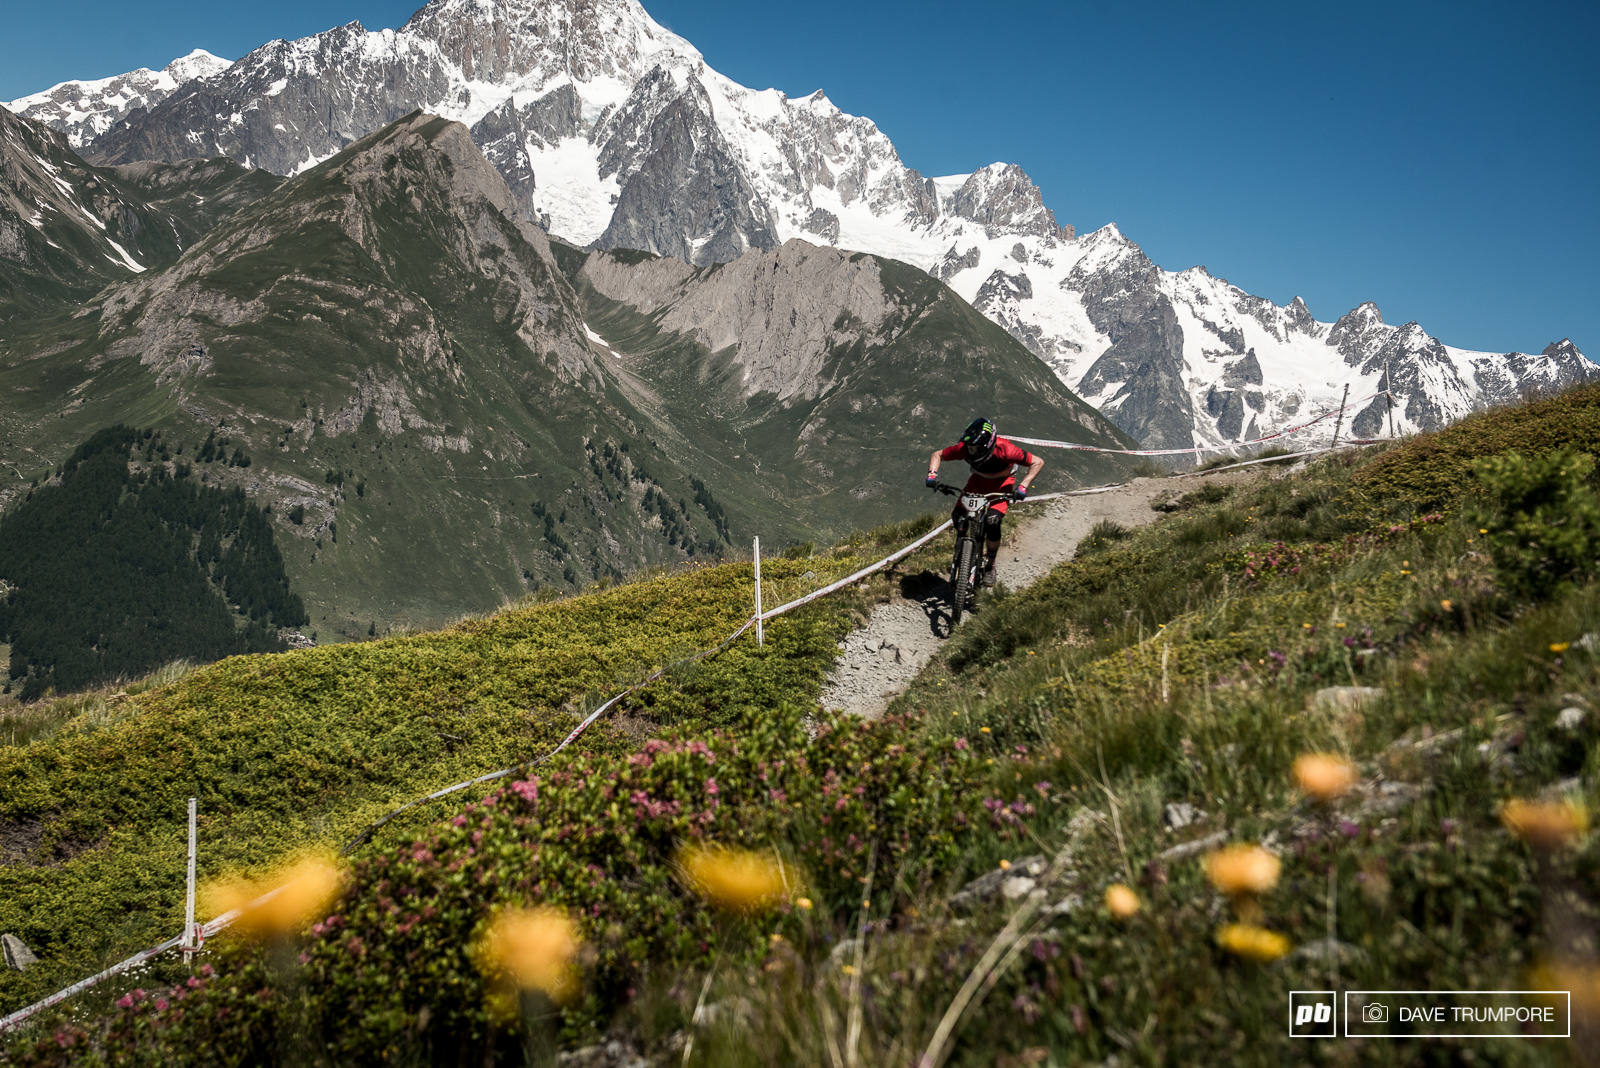 Troy Brosnan is having fun on the long DH oriented stages many of which descend close to 1000m with little or no chance to rest.